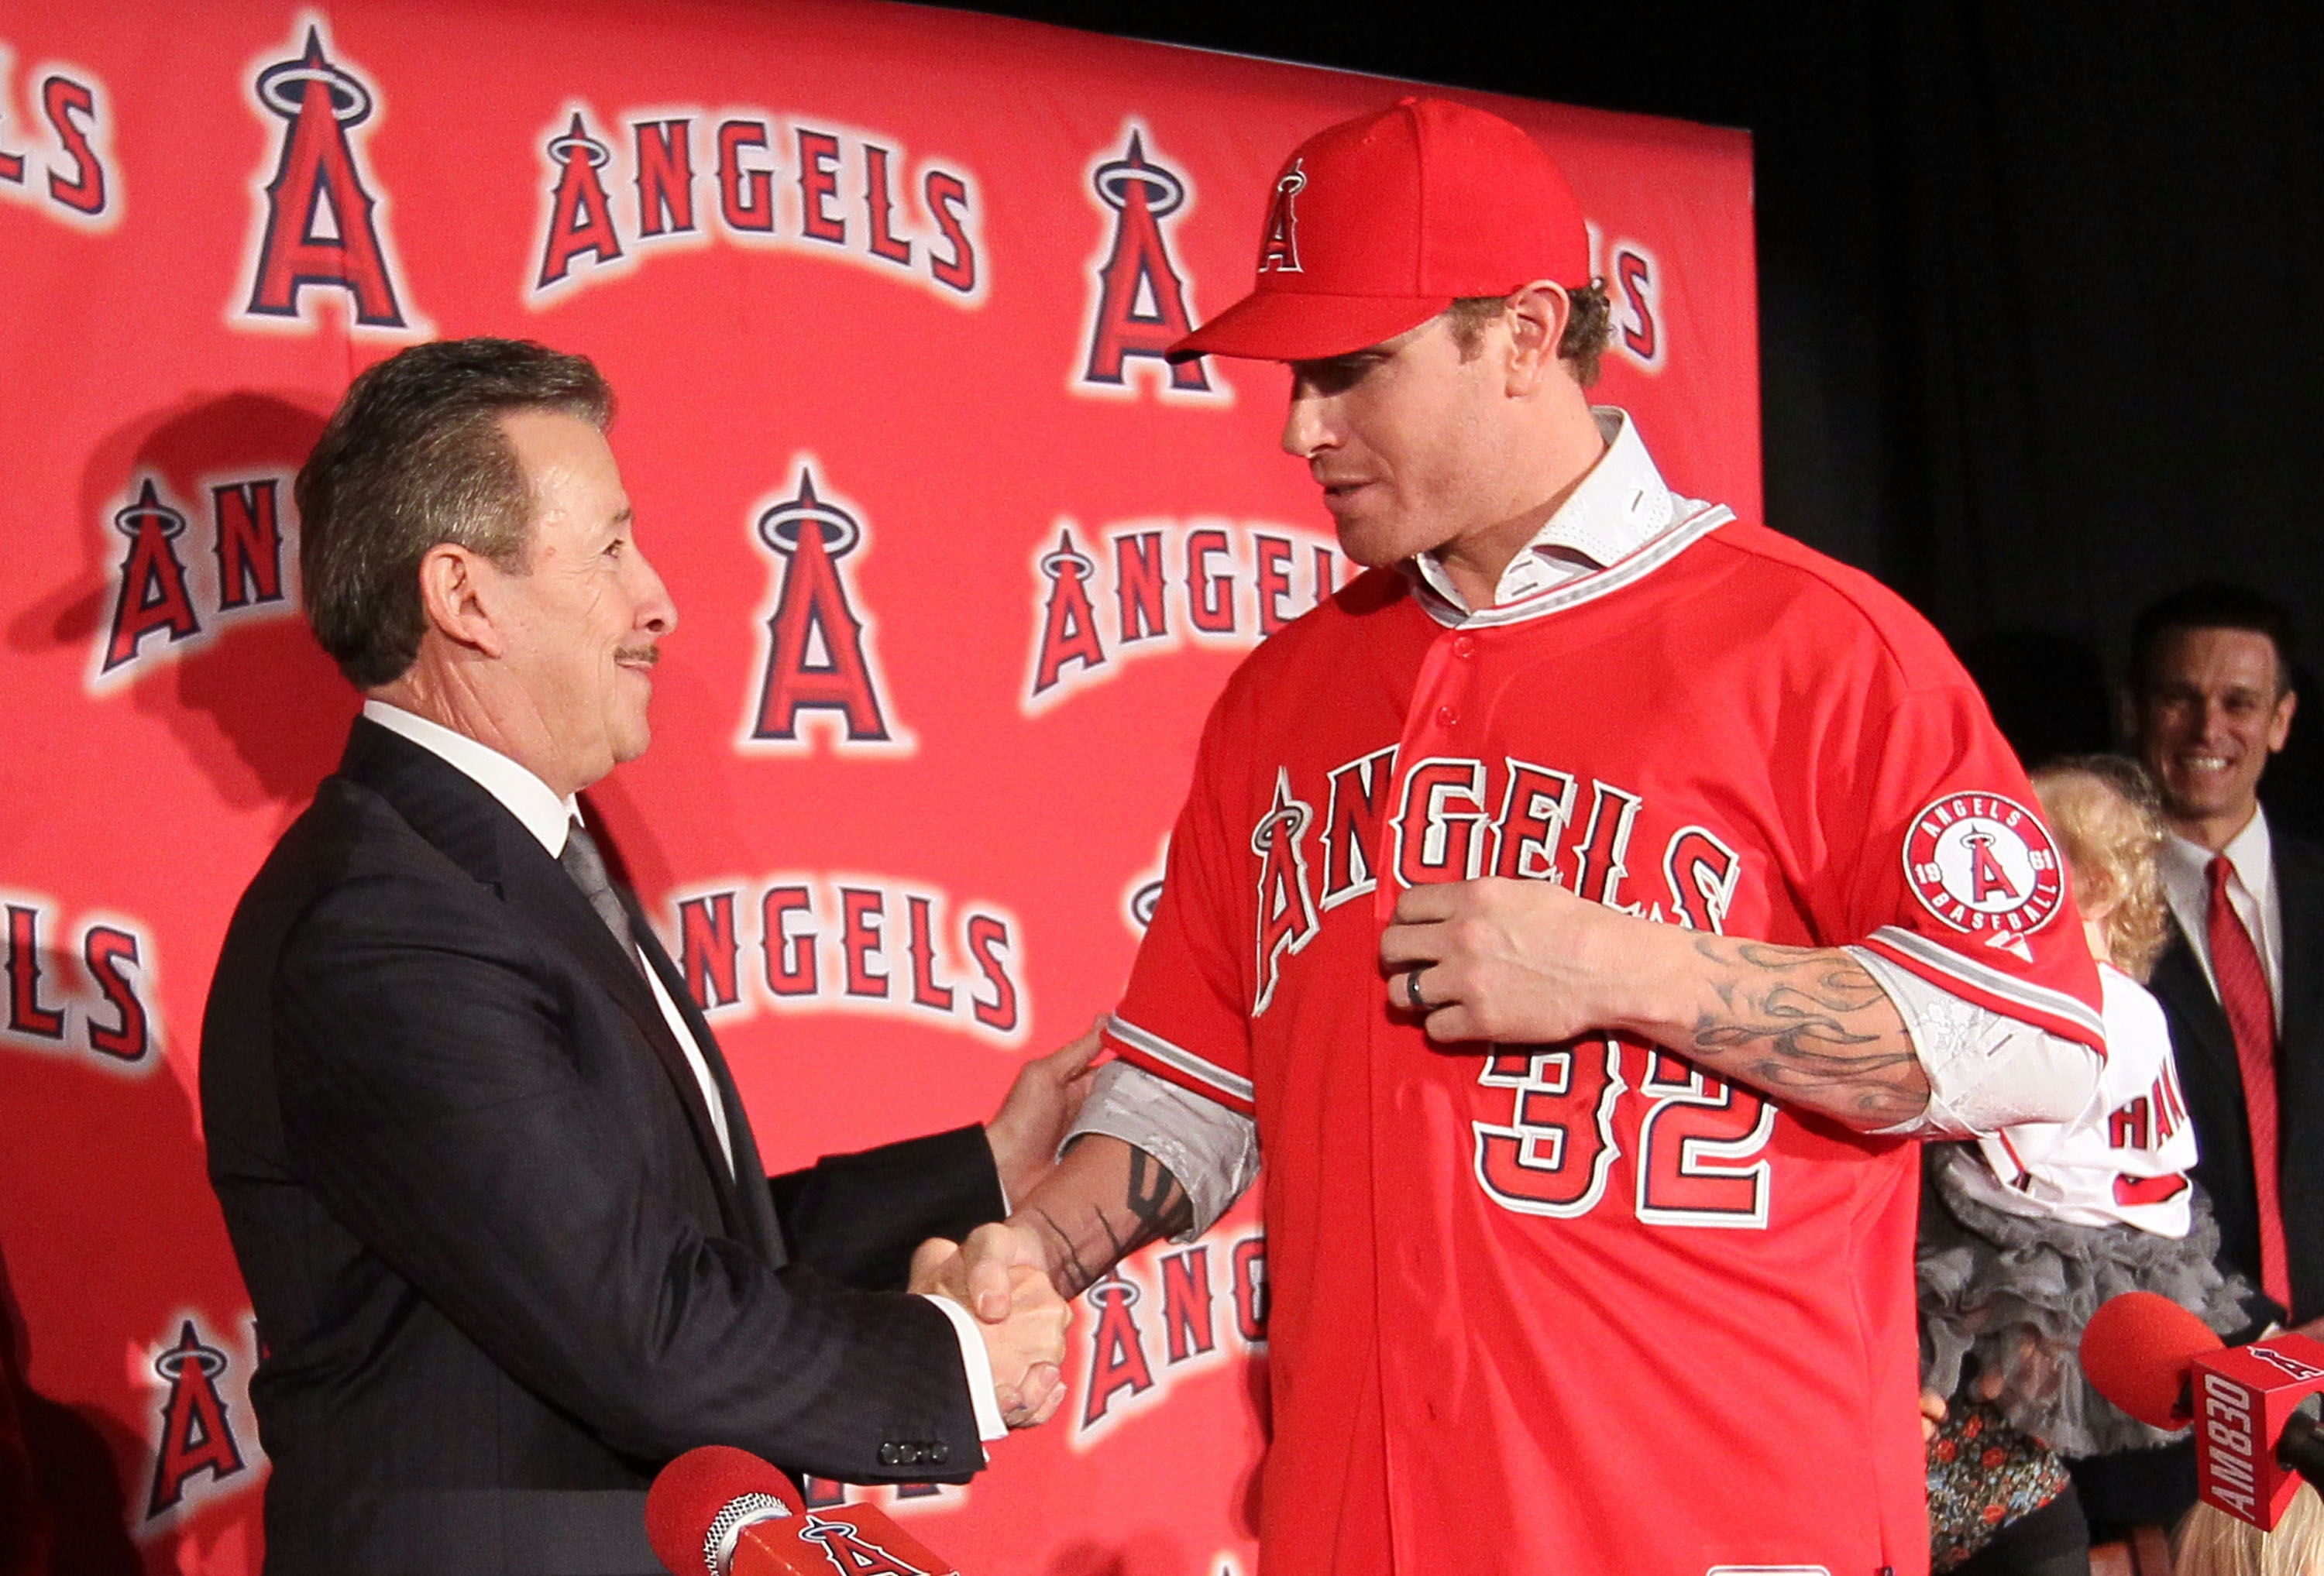 Angels owner Arte Moreno and Josh Hamilton shake hands in 2012. (Getty Images)